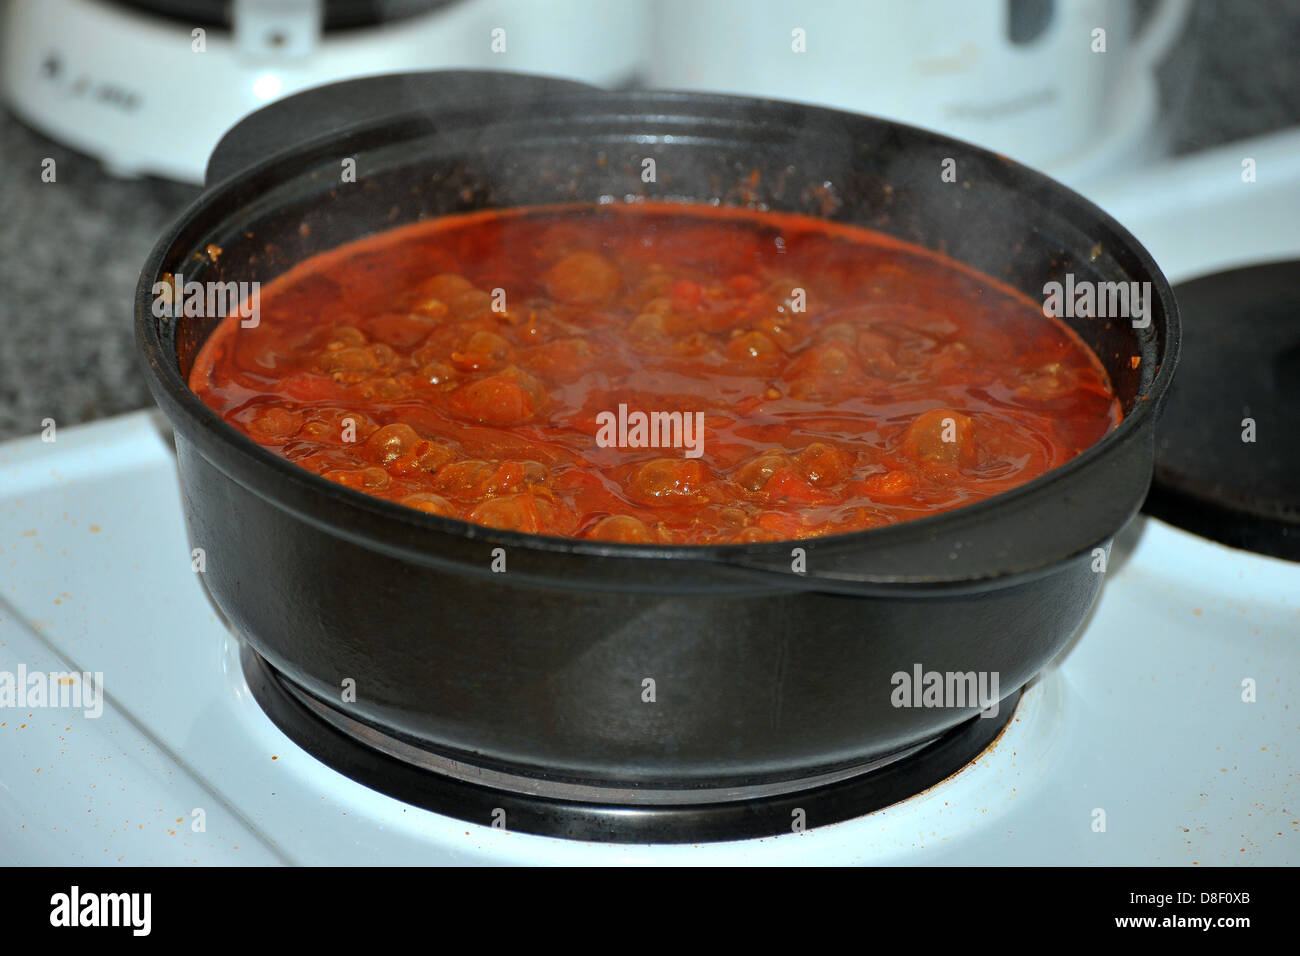 Images of a stew cooking in a cast iron pot on an electric cooker. - Stock Image